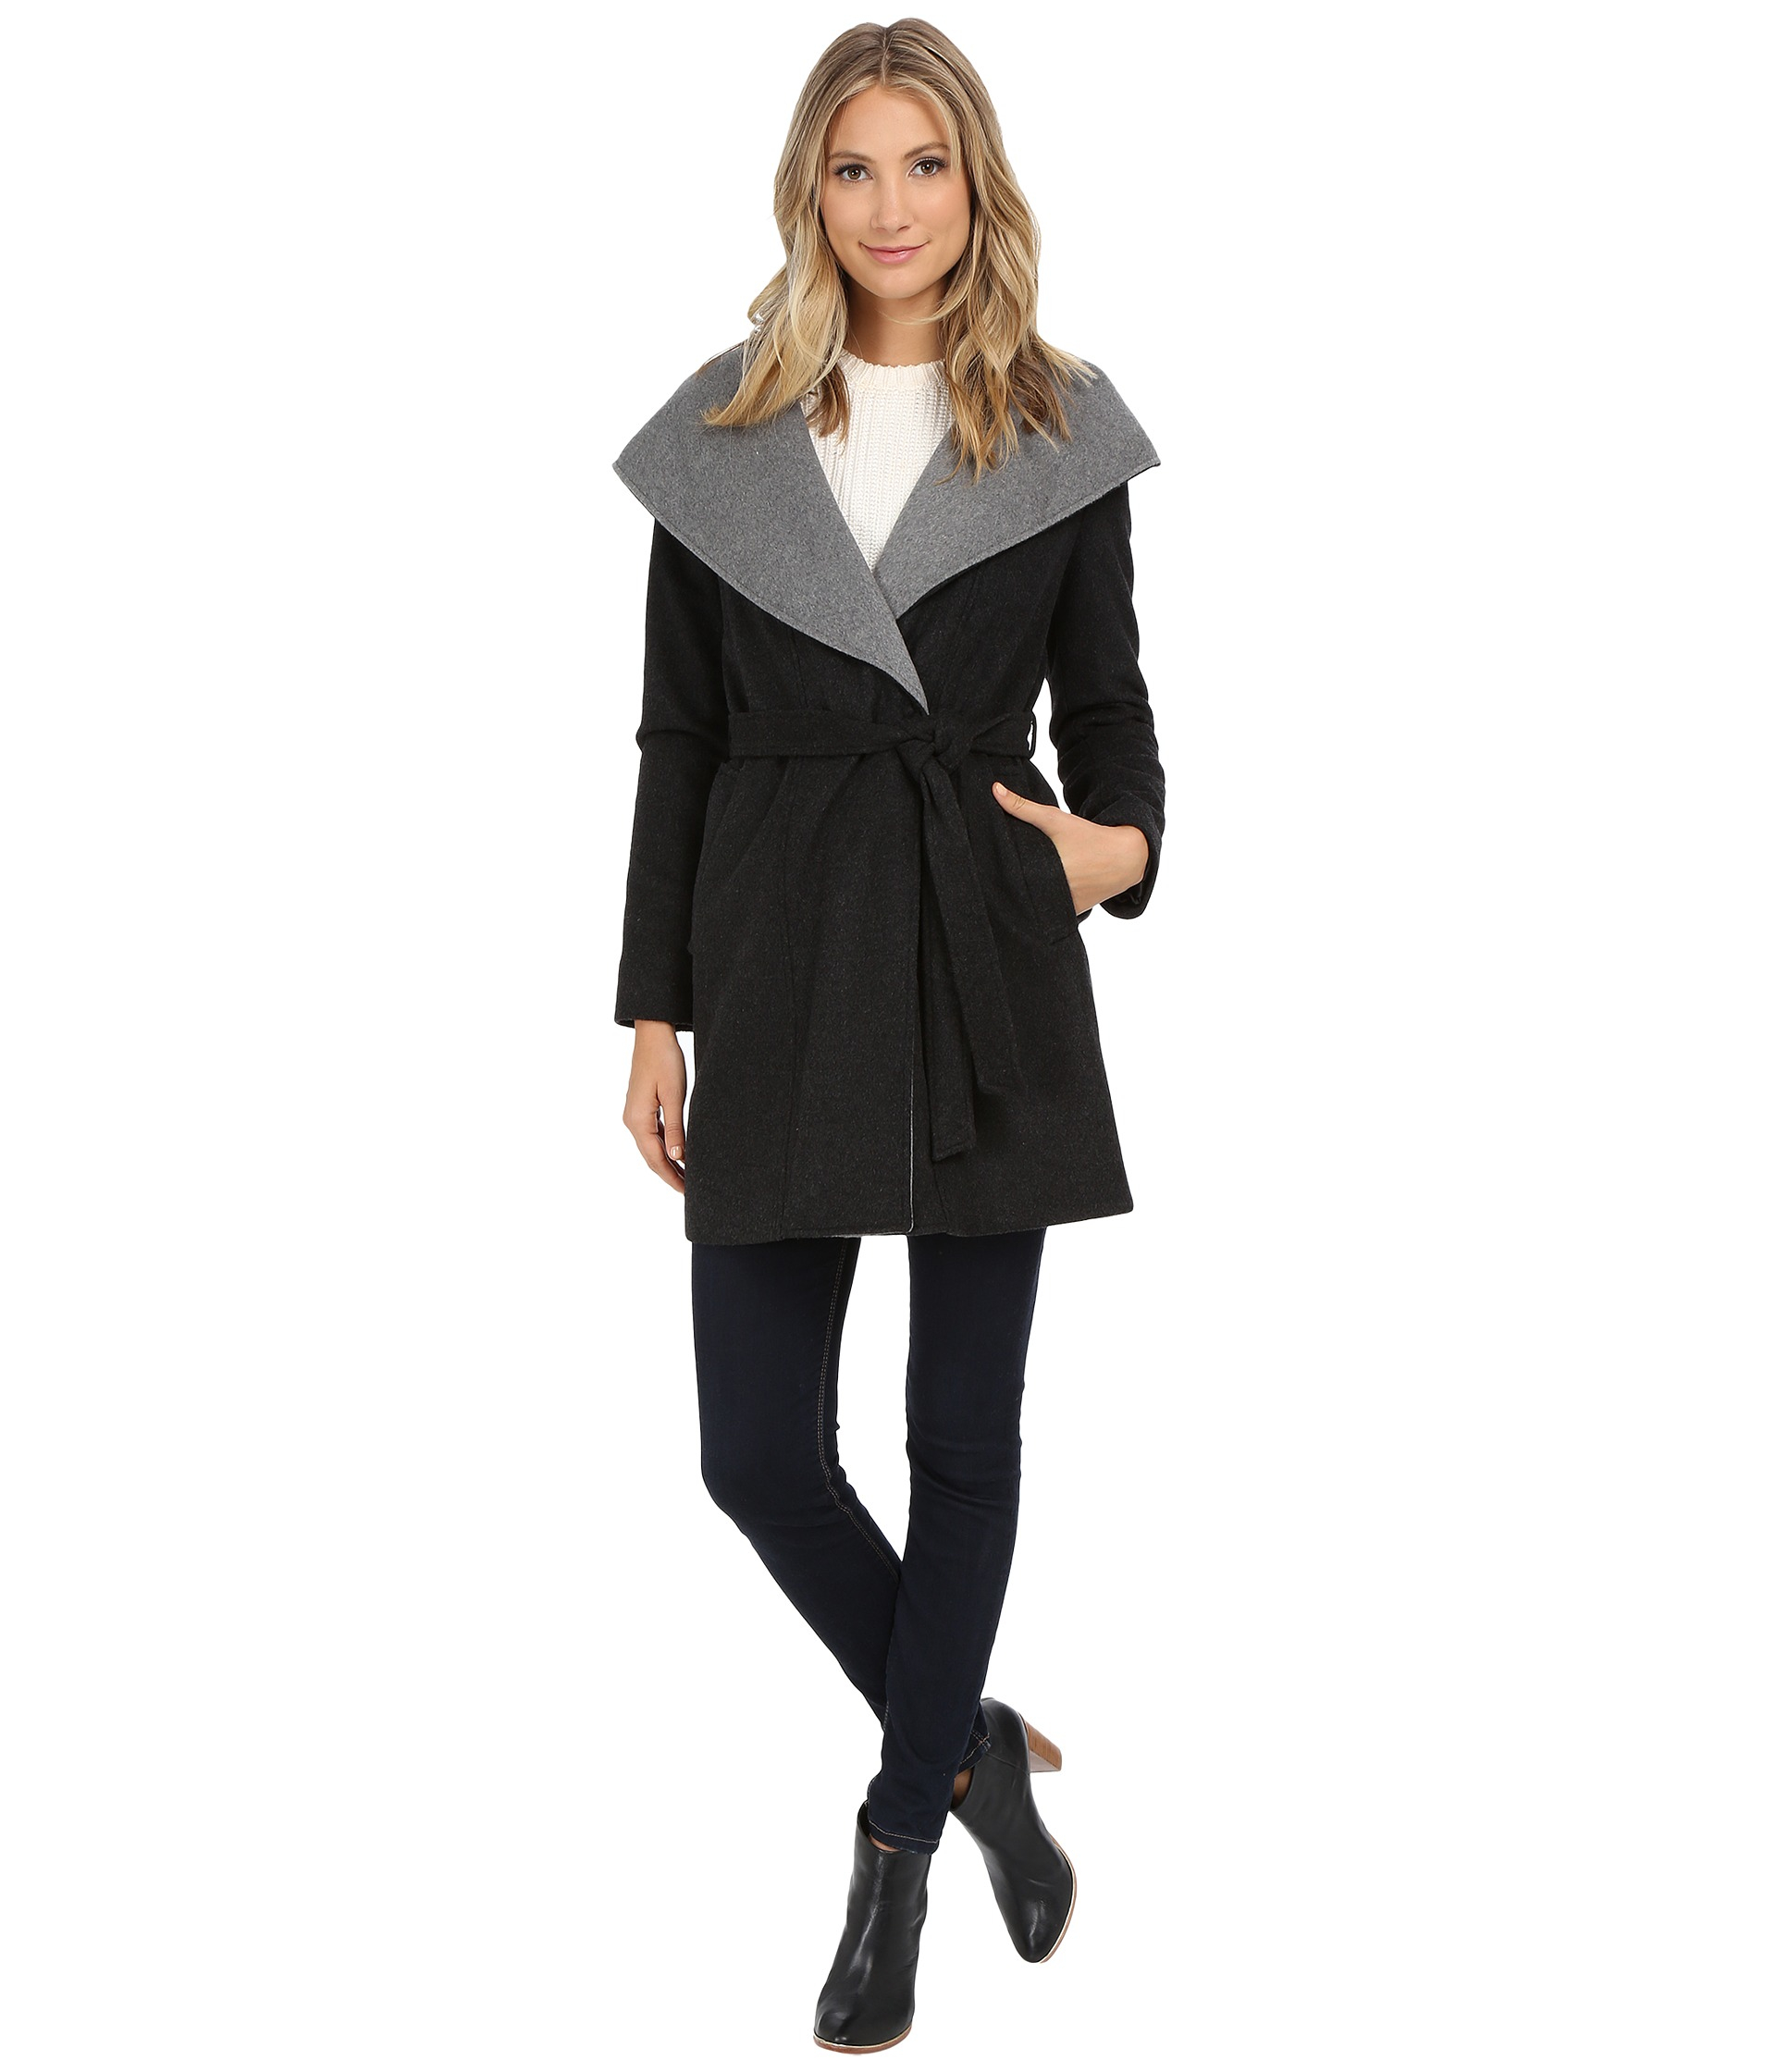 Dkny Oversized Hooded Shawl Collar Belted Wool 30350-y5 in Gray   Lyst